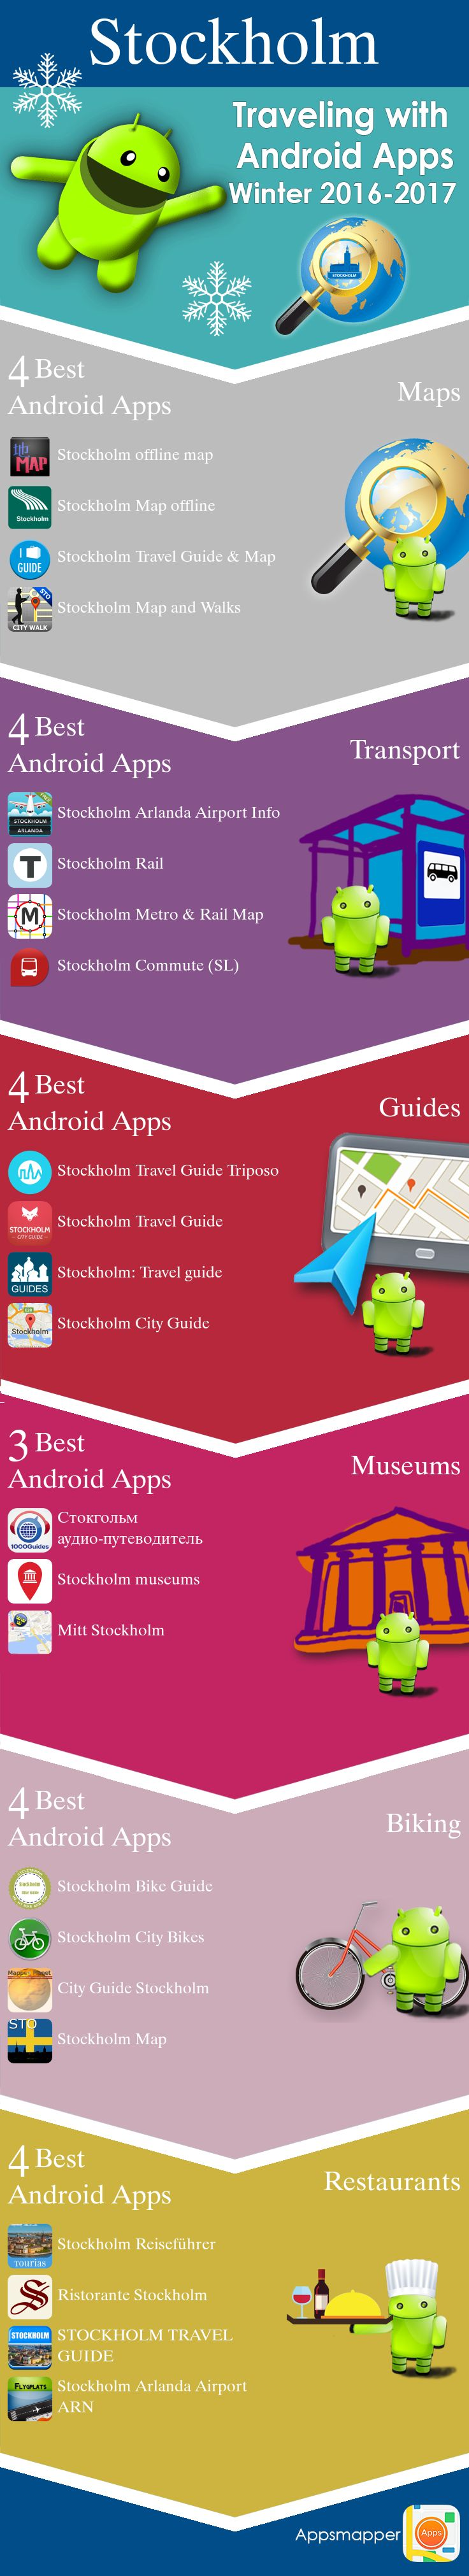 Stockholm Android apps: Travel Guides, Maps, Transportation, Biking, Museums, Parking, Sport and apps for Students.